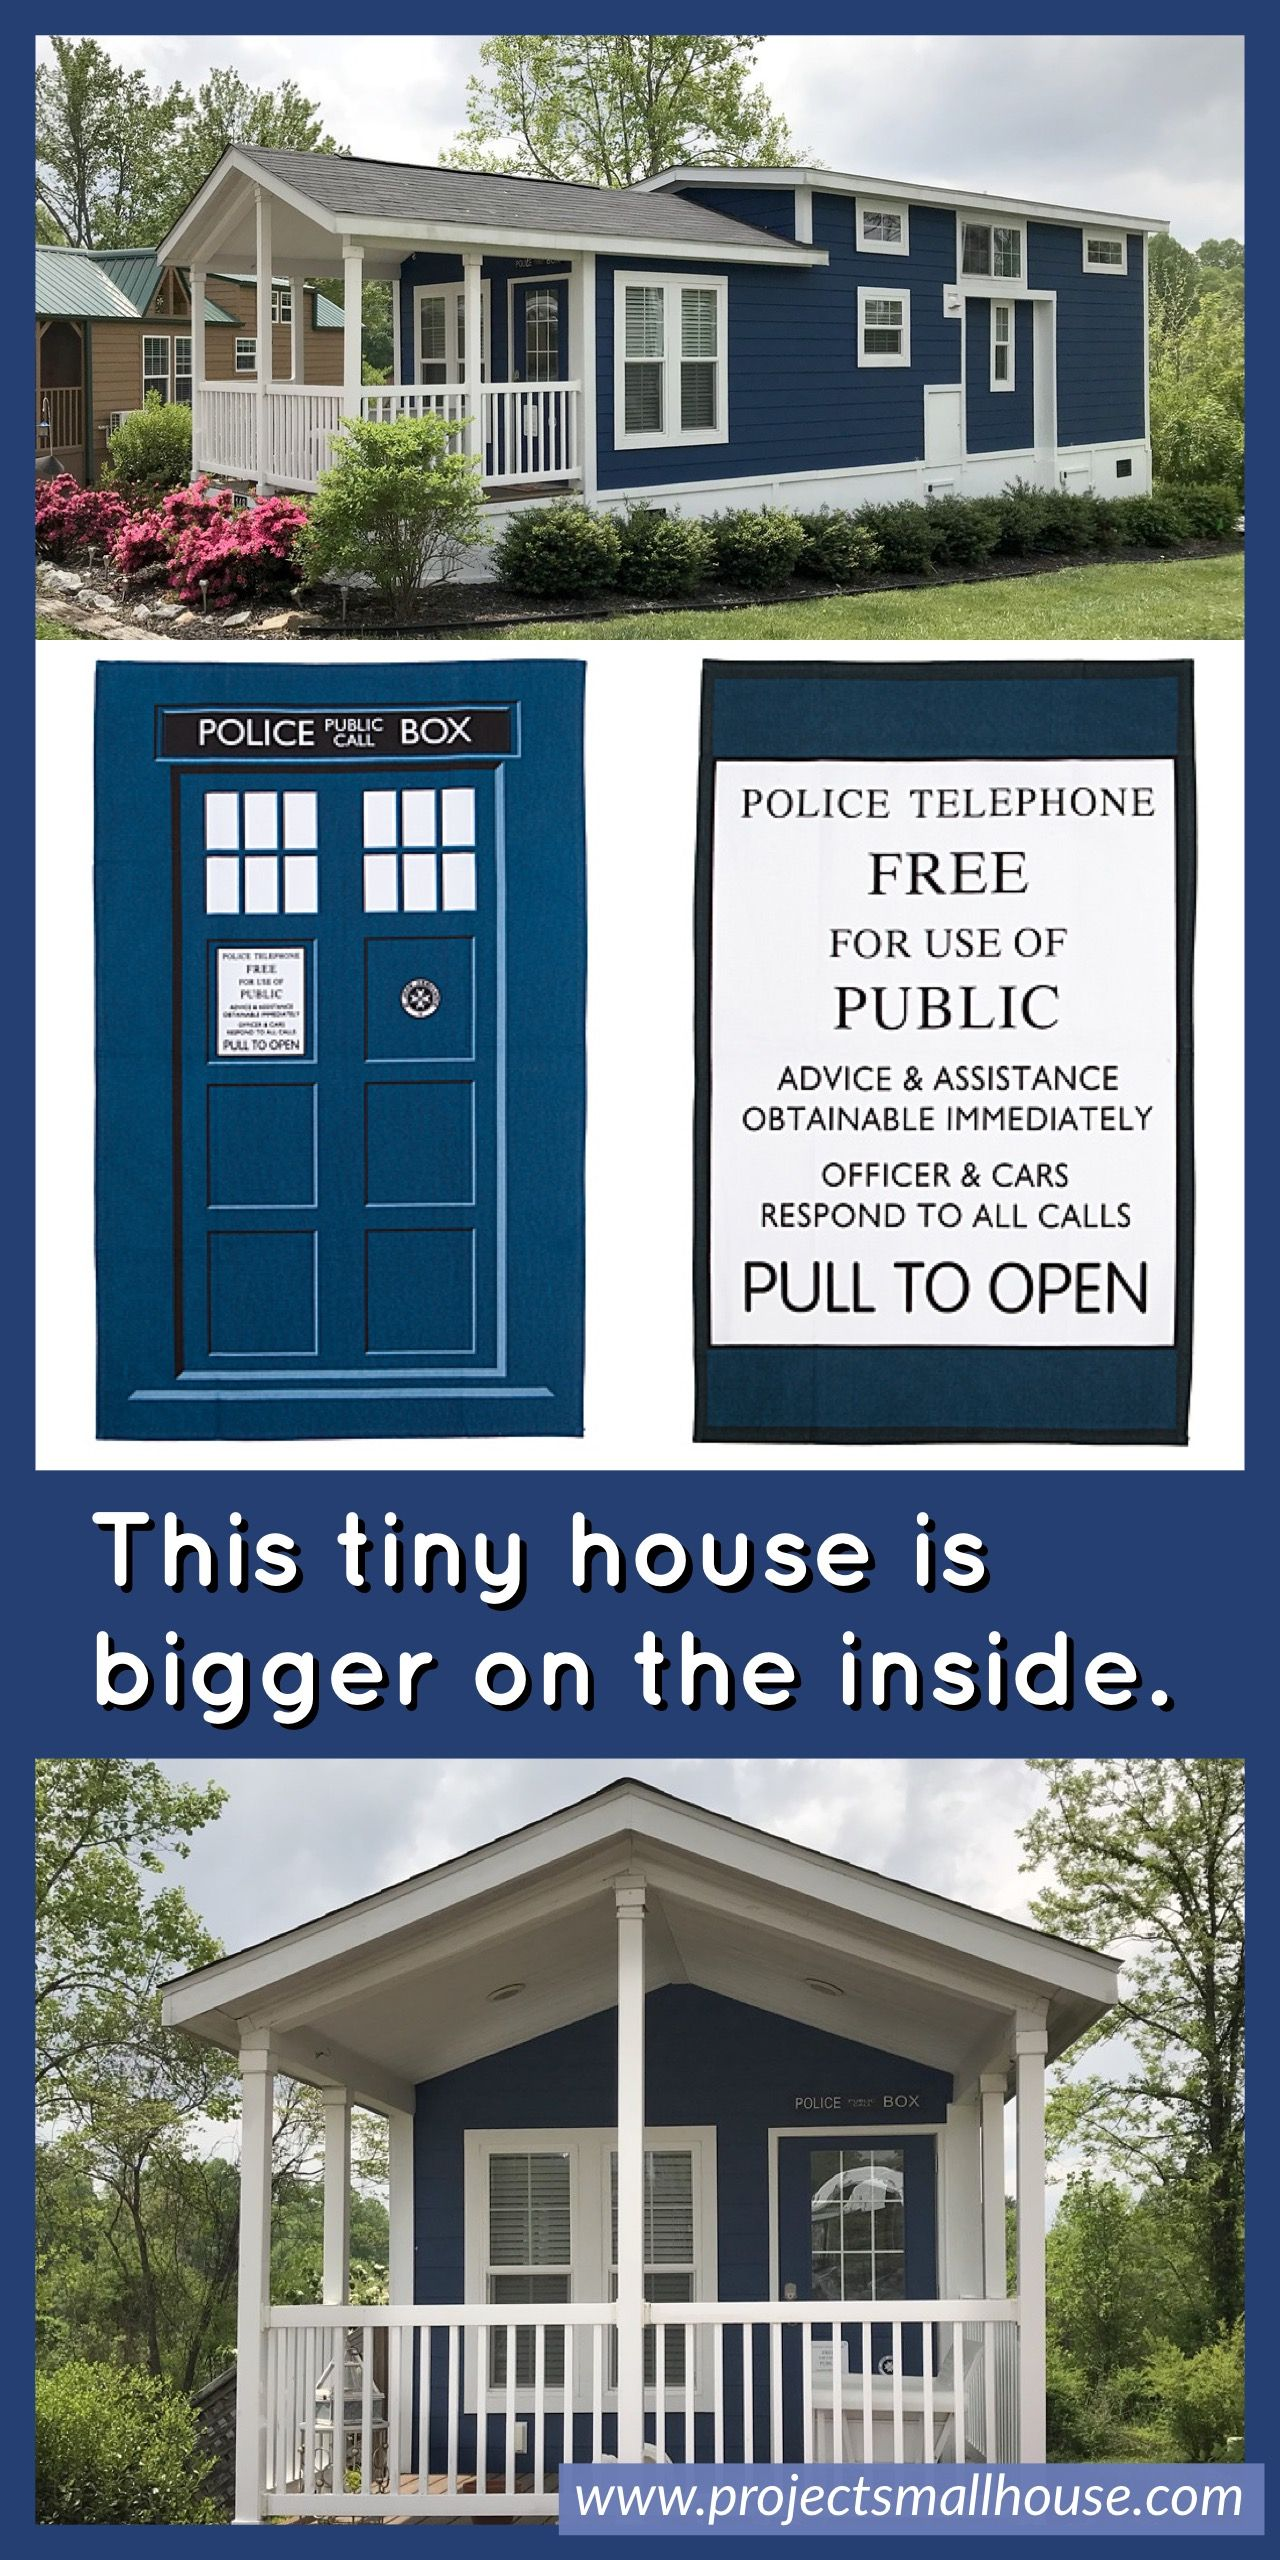 This tiny house is bigger on the inside. Doctor Who Tardis  Tiny